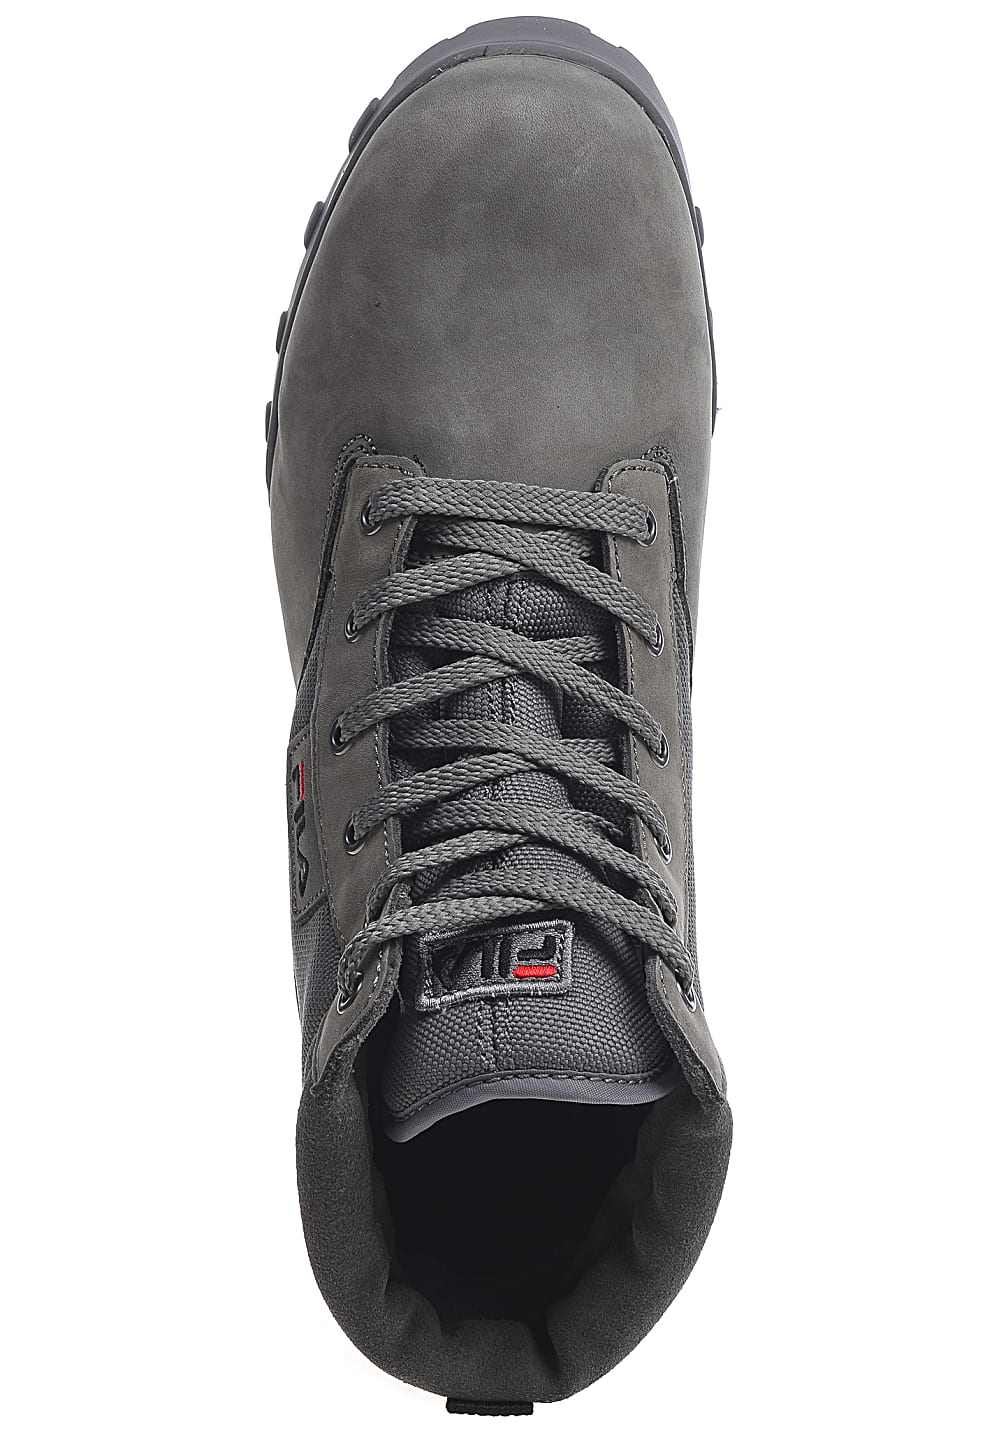 edc3acc3a65 Fila Heritage Grunge MID - Boots for Men - Grey